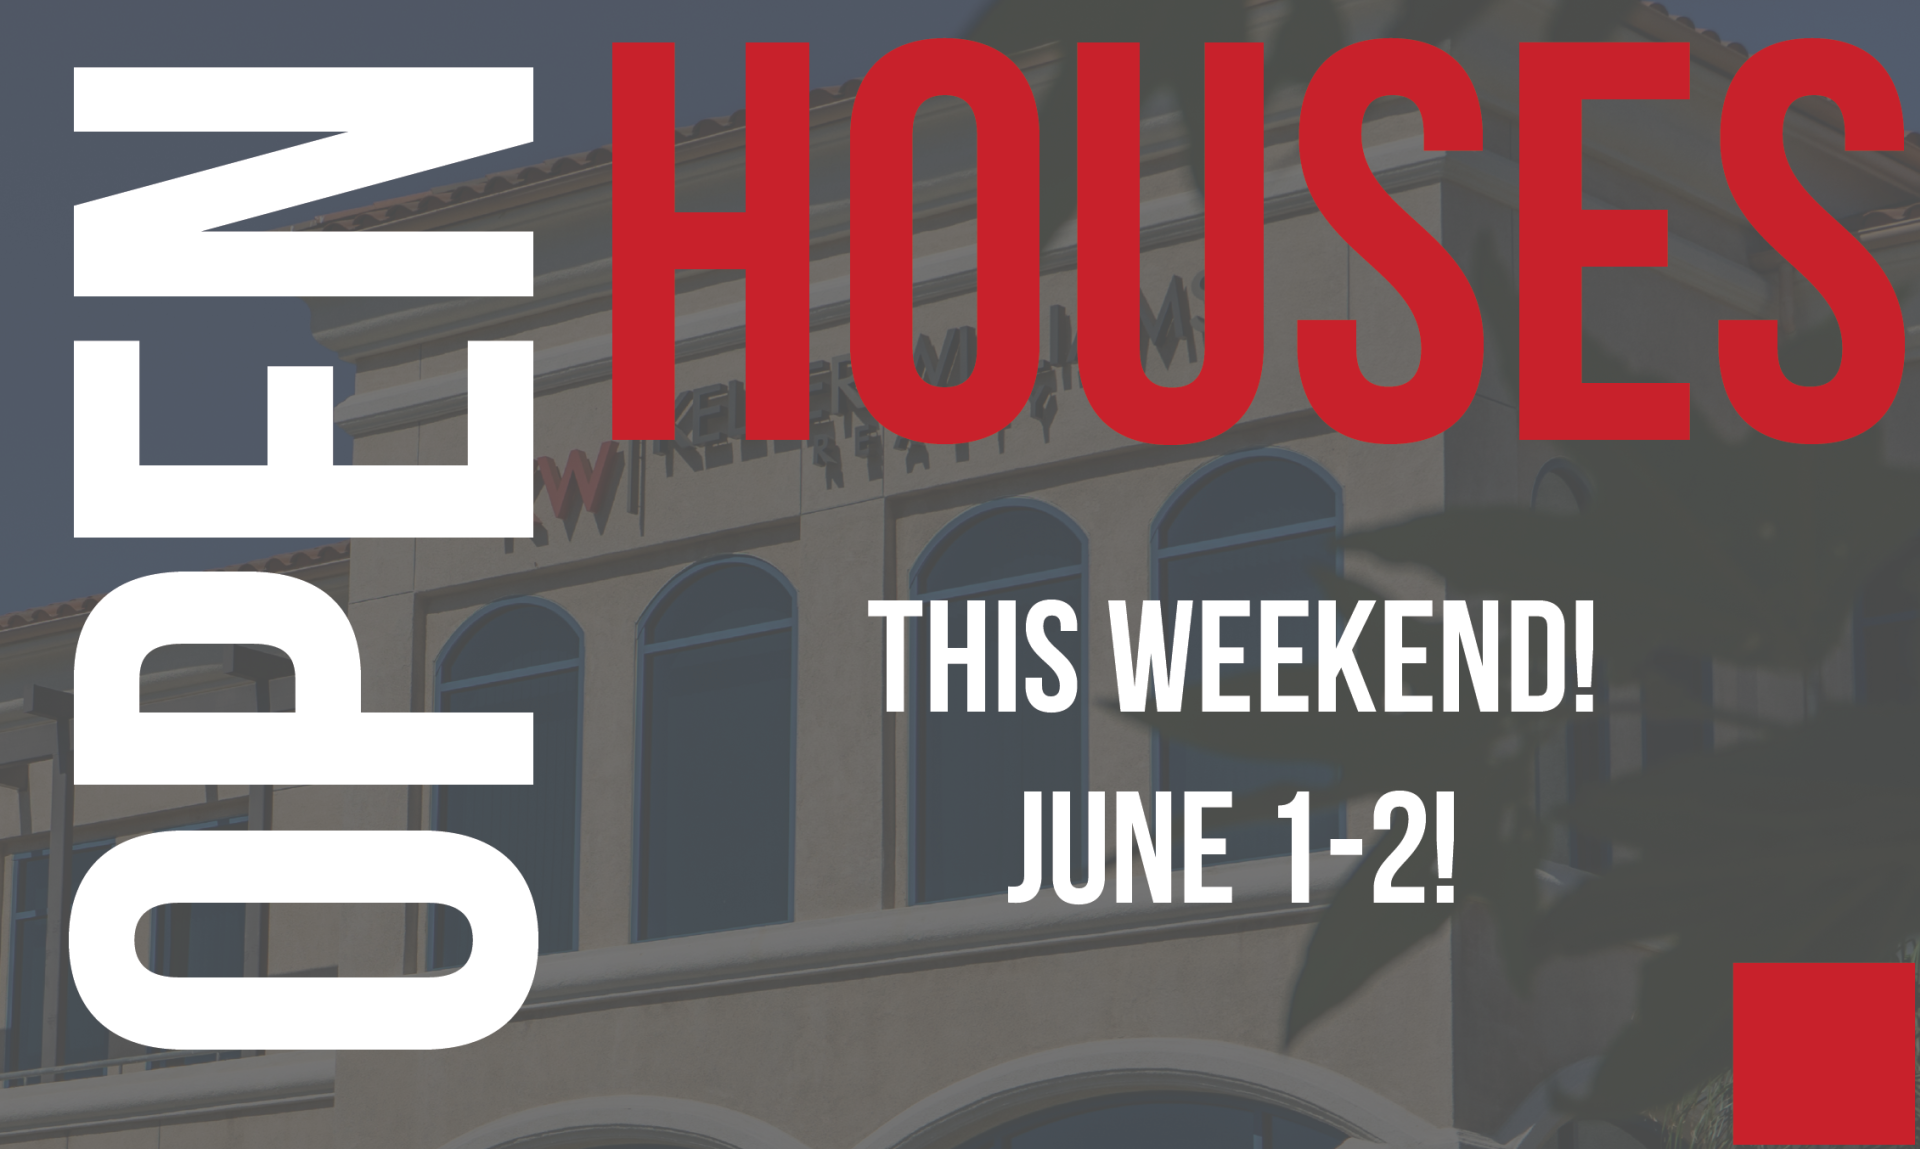 Open Houses This Weekend! June 1-2